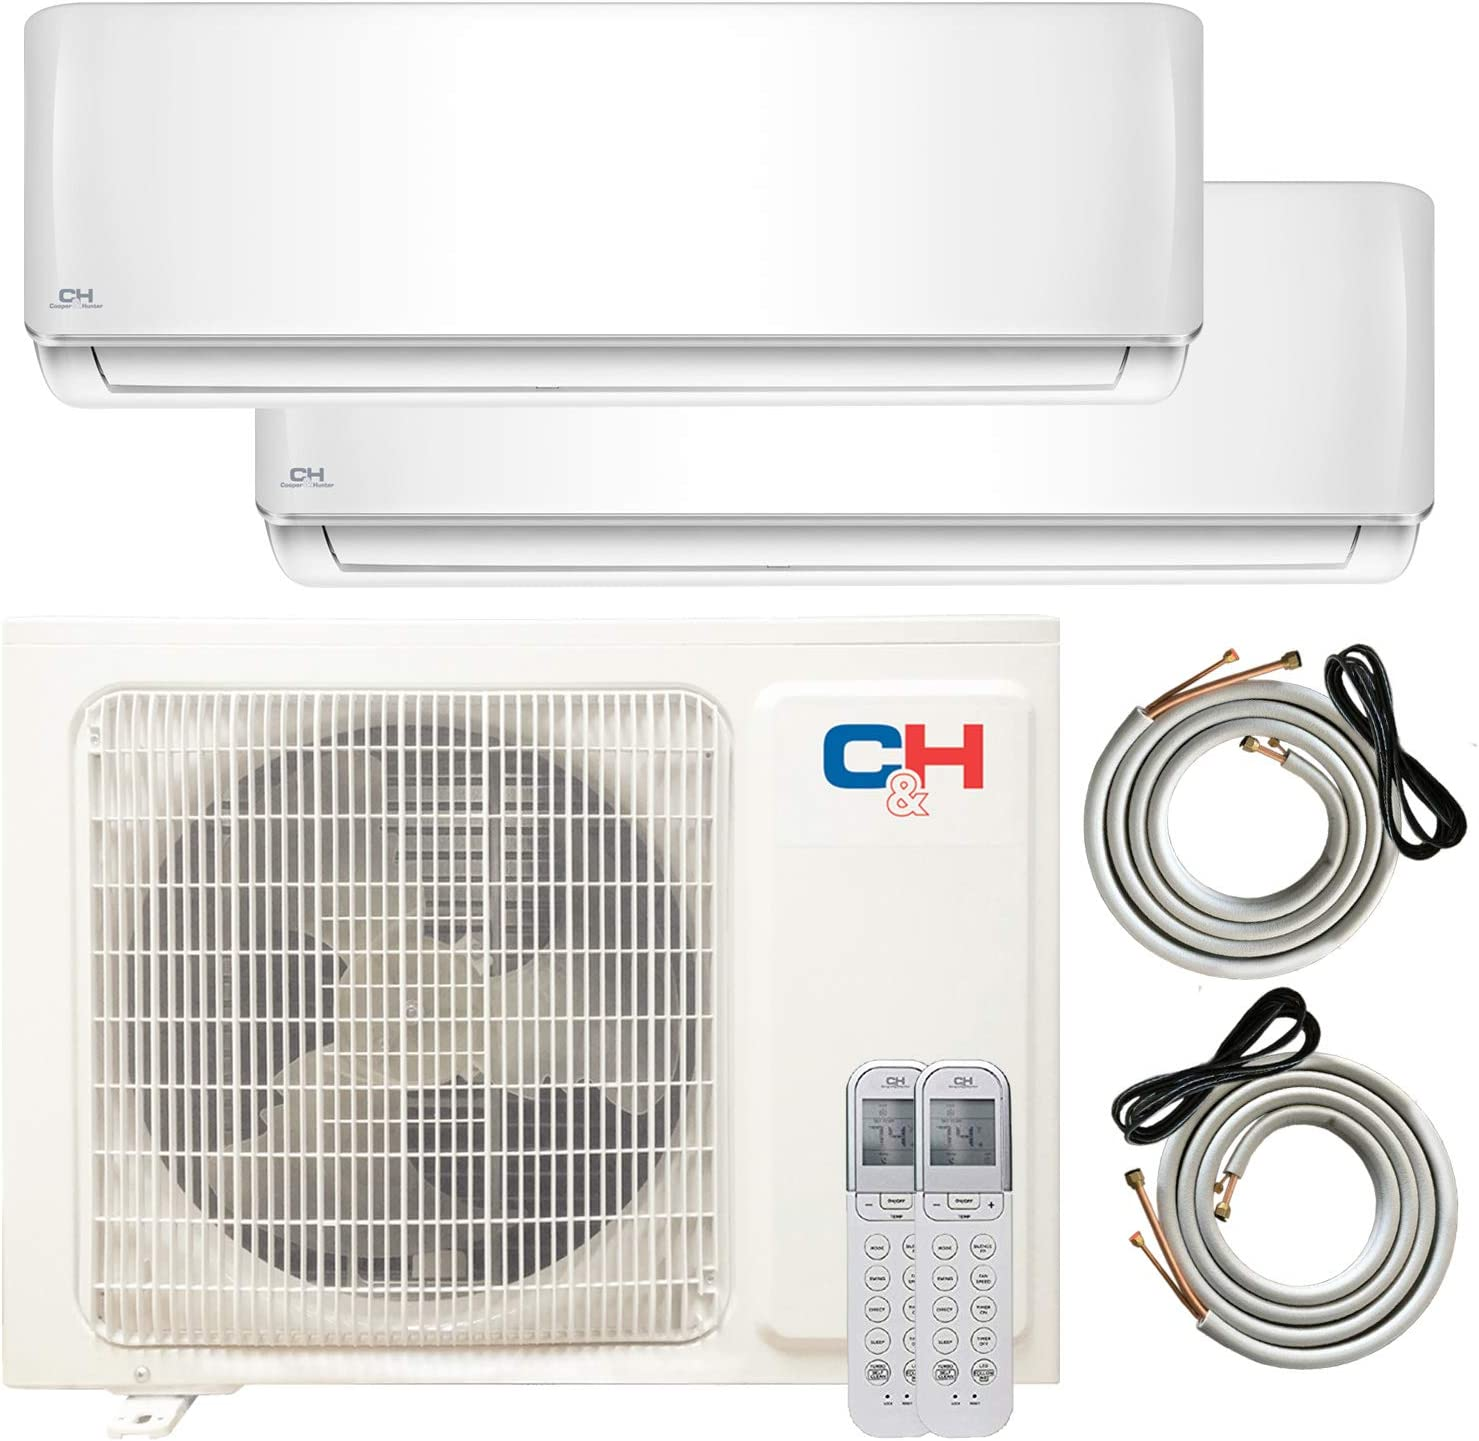 Dual 2 Zone 9,000 + 9,000 BTU Ductless Mini Split AC/Heating System, Pre-Charged, Heat Pump, 21.3 SEER Energy Star Certified, Including 25ft Copper Line Set and Communication Wires